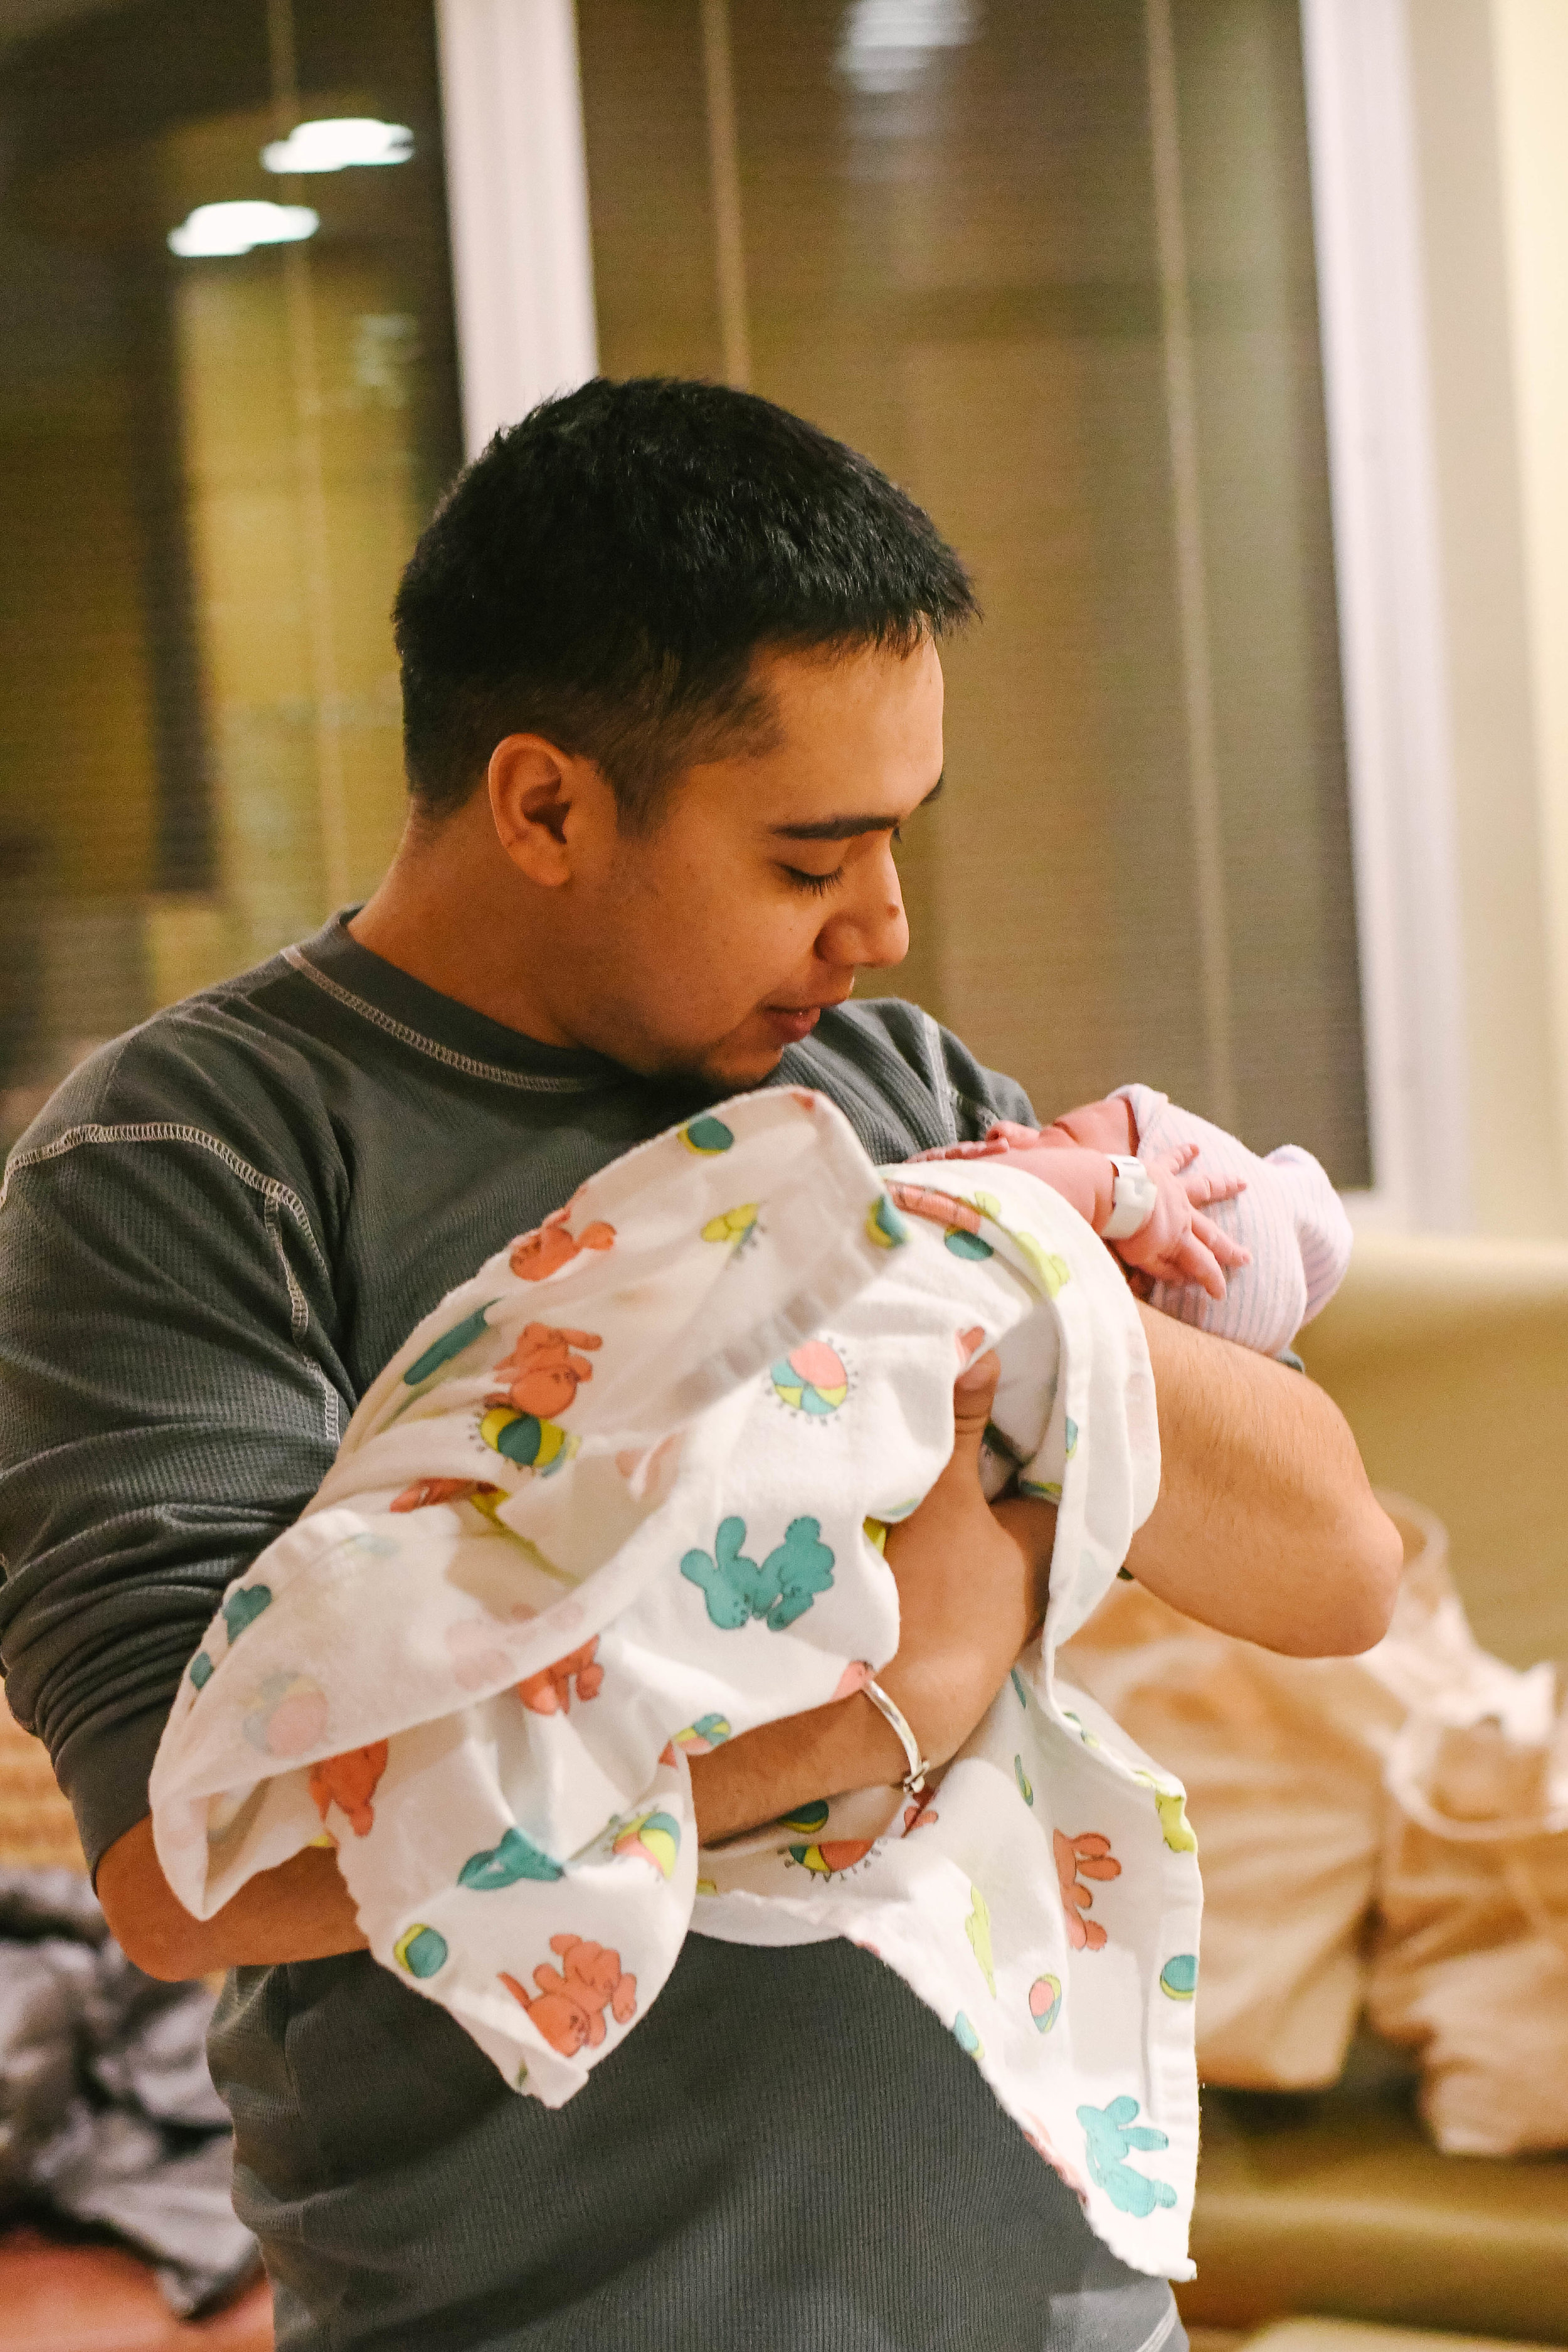 Watching your brother become a father truly is amazing! We will cherish these moments!